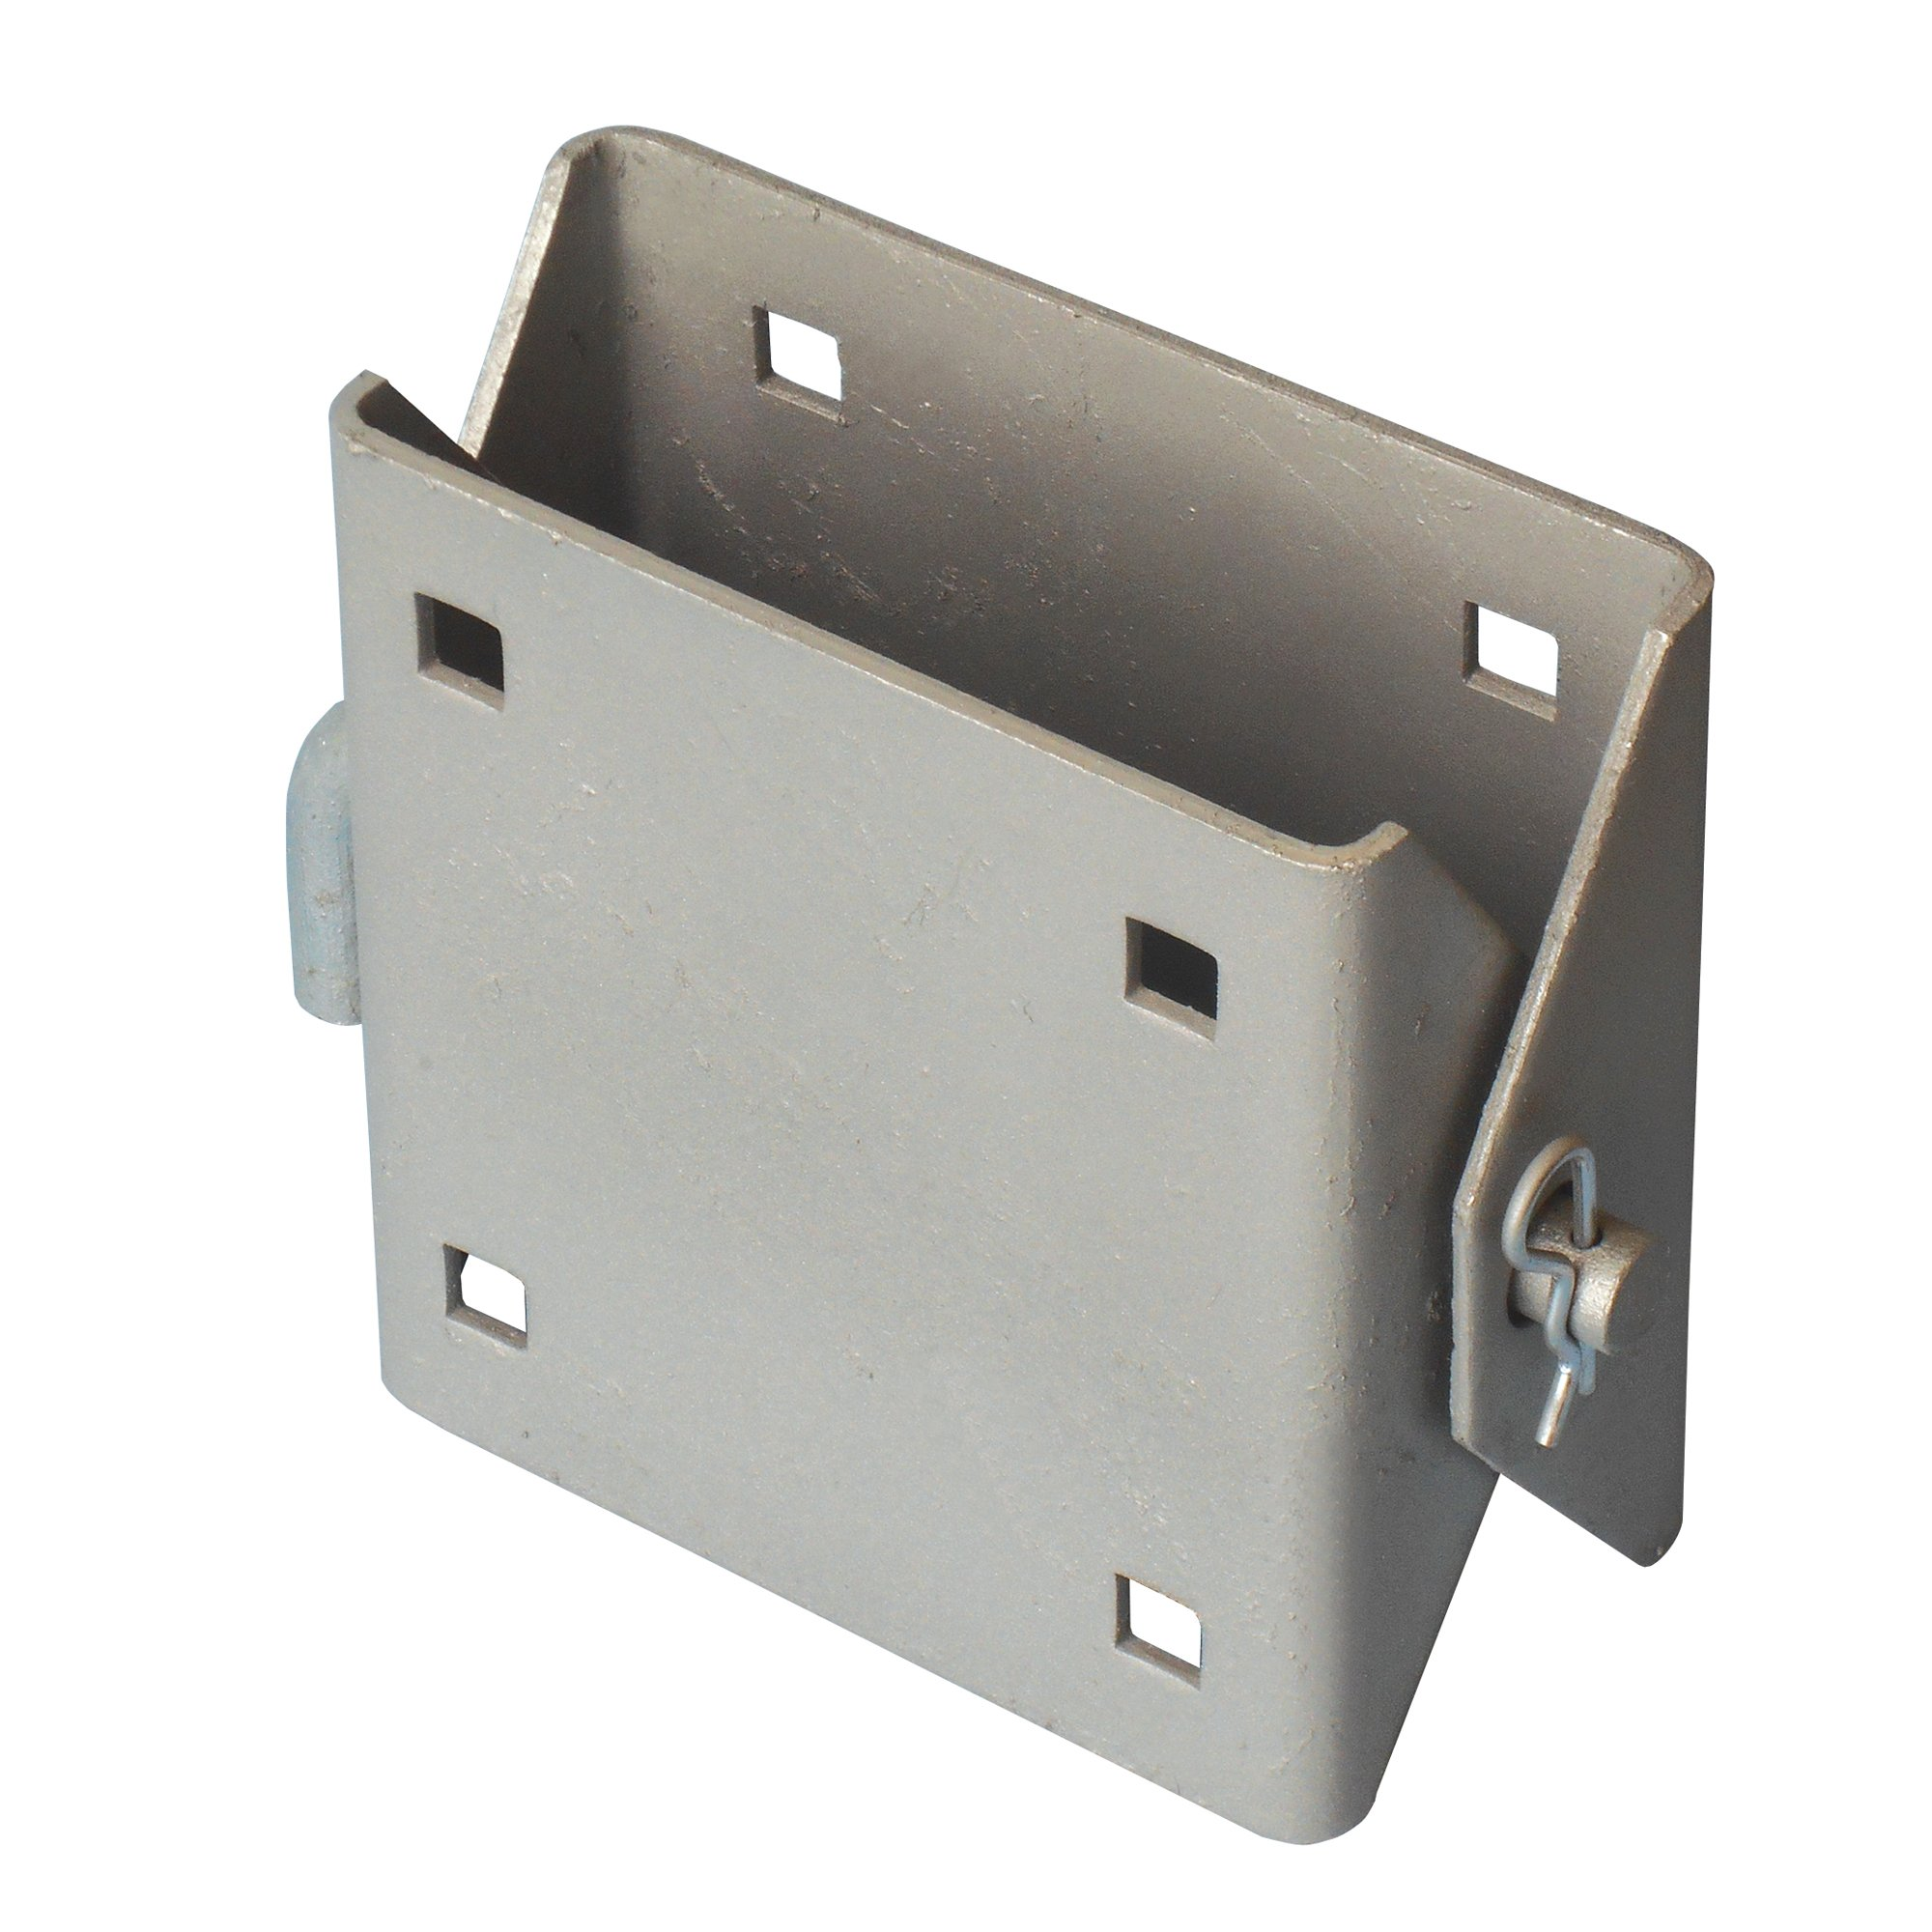 Dock Edge Connector Hinge, 4 Holes, 1/8'', 7/16'' Punch - Galvanized